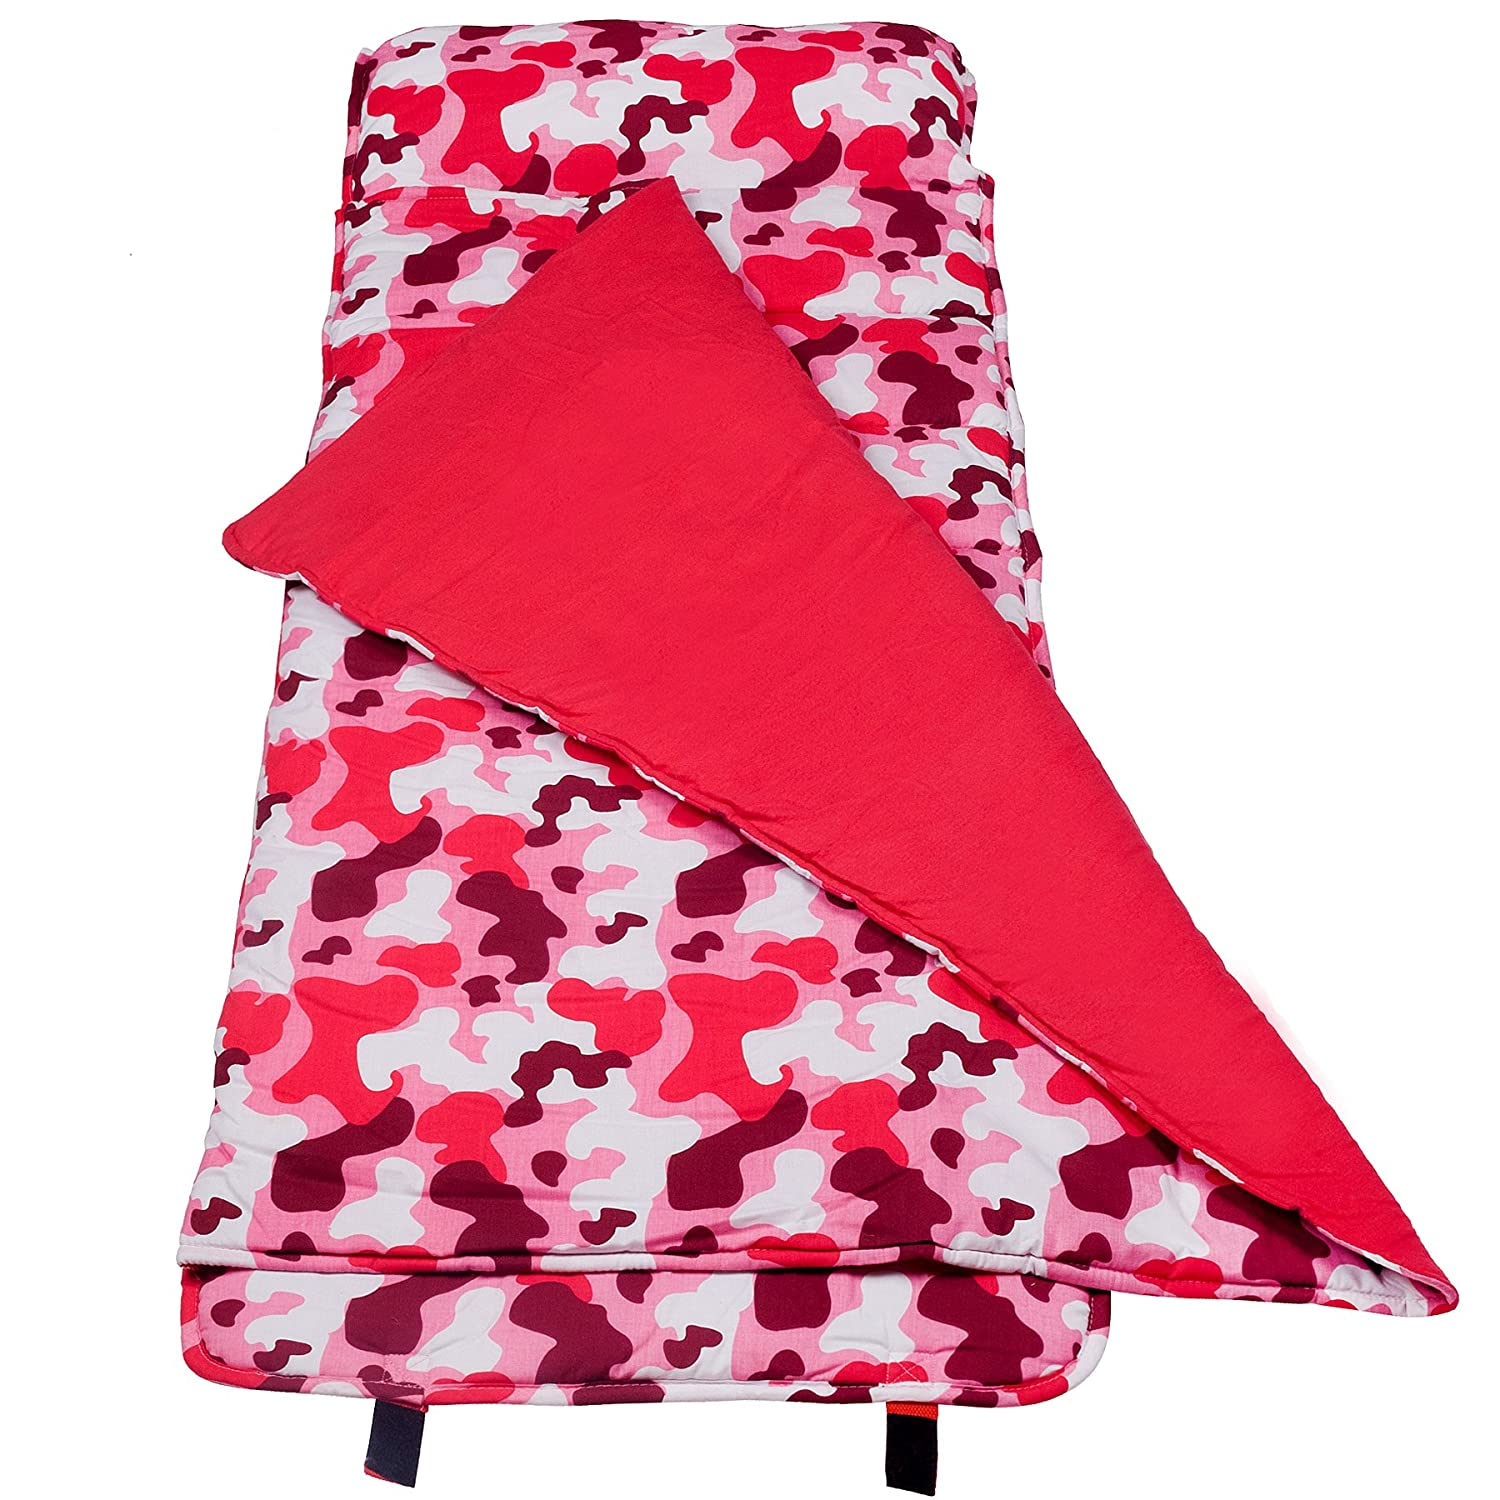 Perfect for Daycare and Preschool or Napping On-The-Go Features Built-in Blanket and Pillow Olive Kids Design Wildkin Original Nap Mat Unicorn